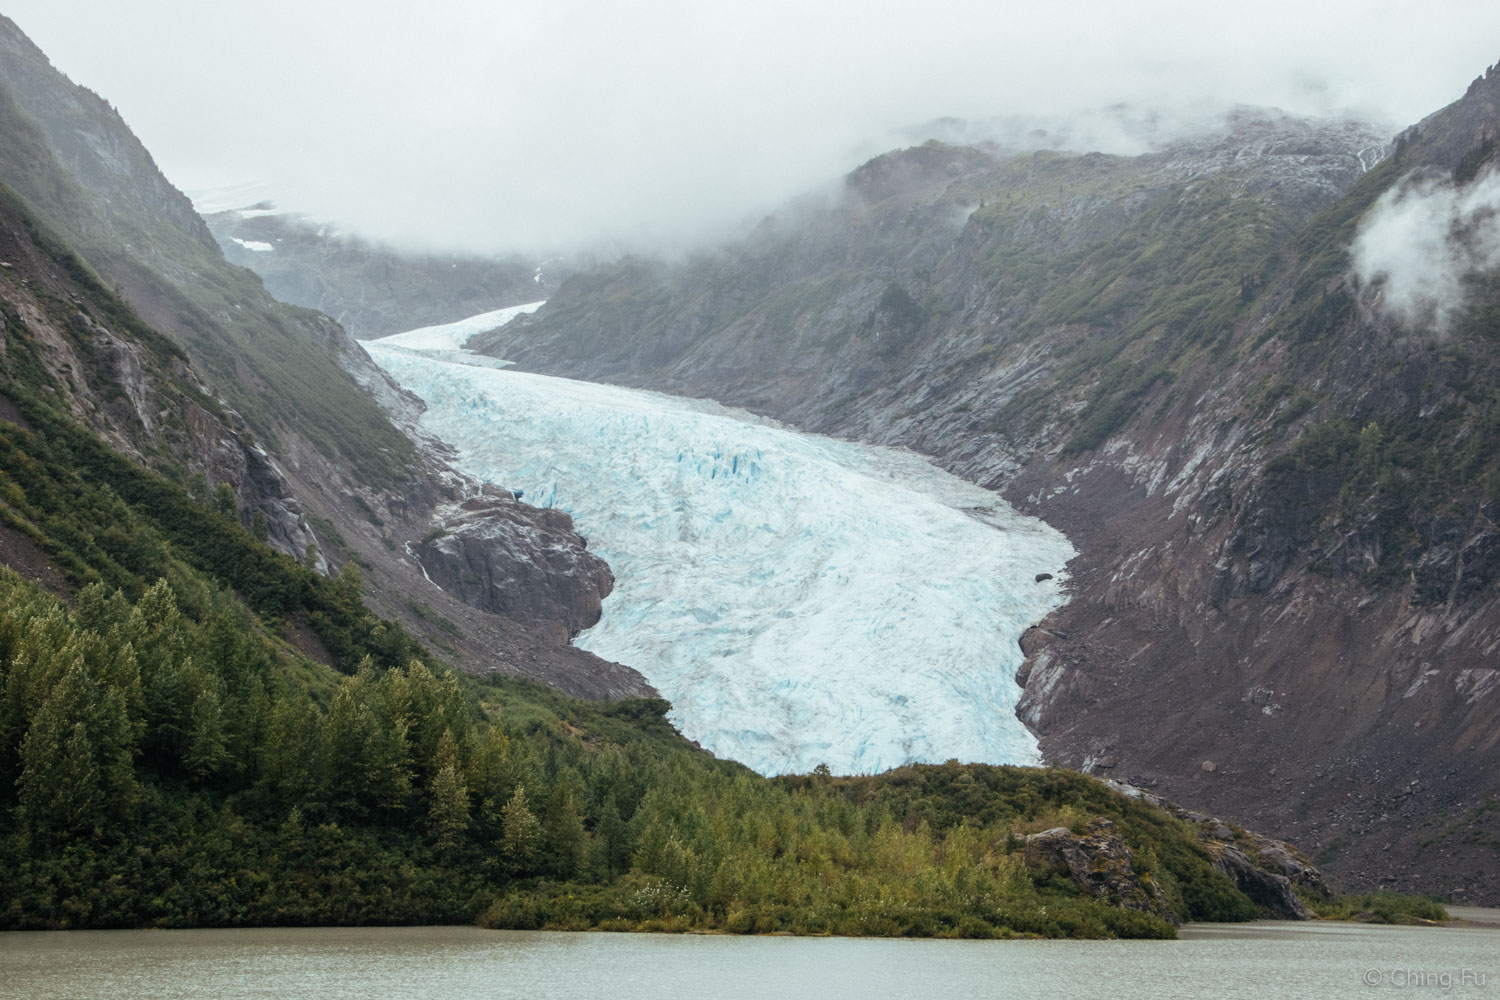 We wanted to paddle out to Bear Glacier but it was raining too hard on our way to Stewart and when we left.